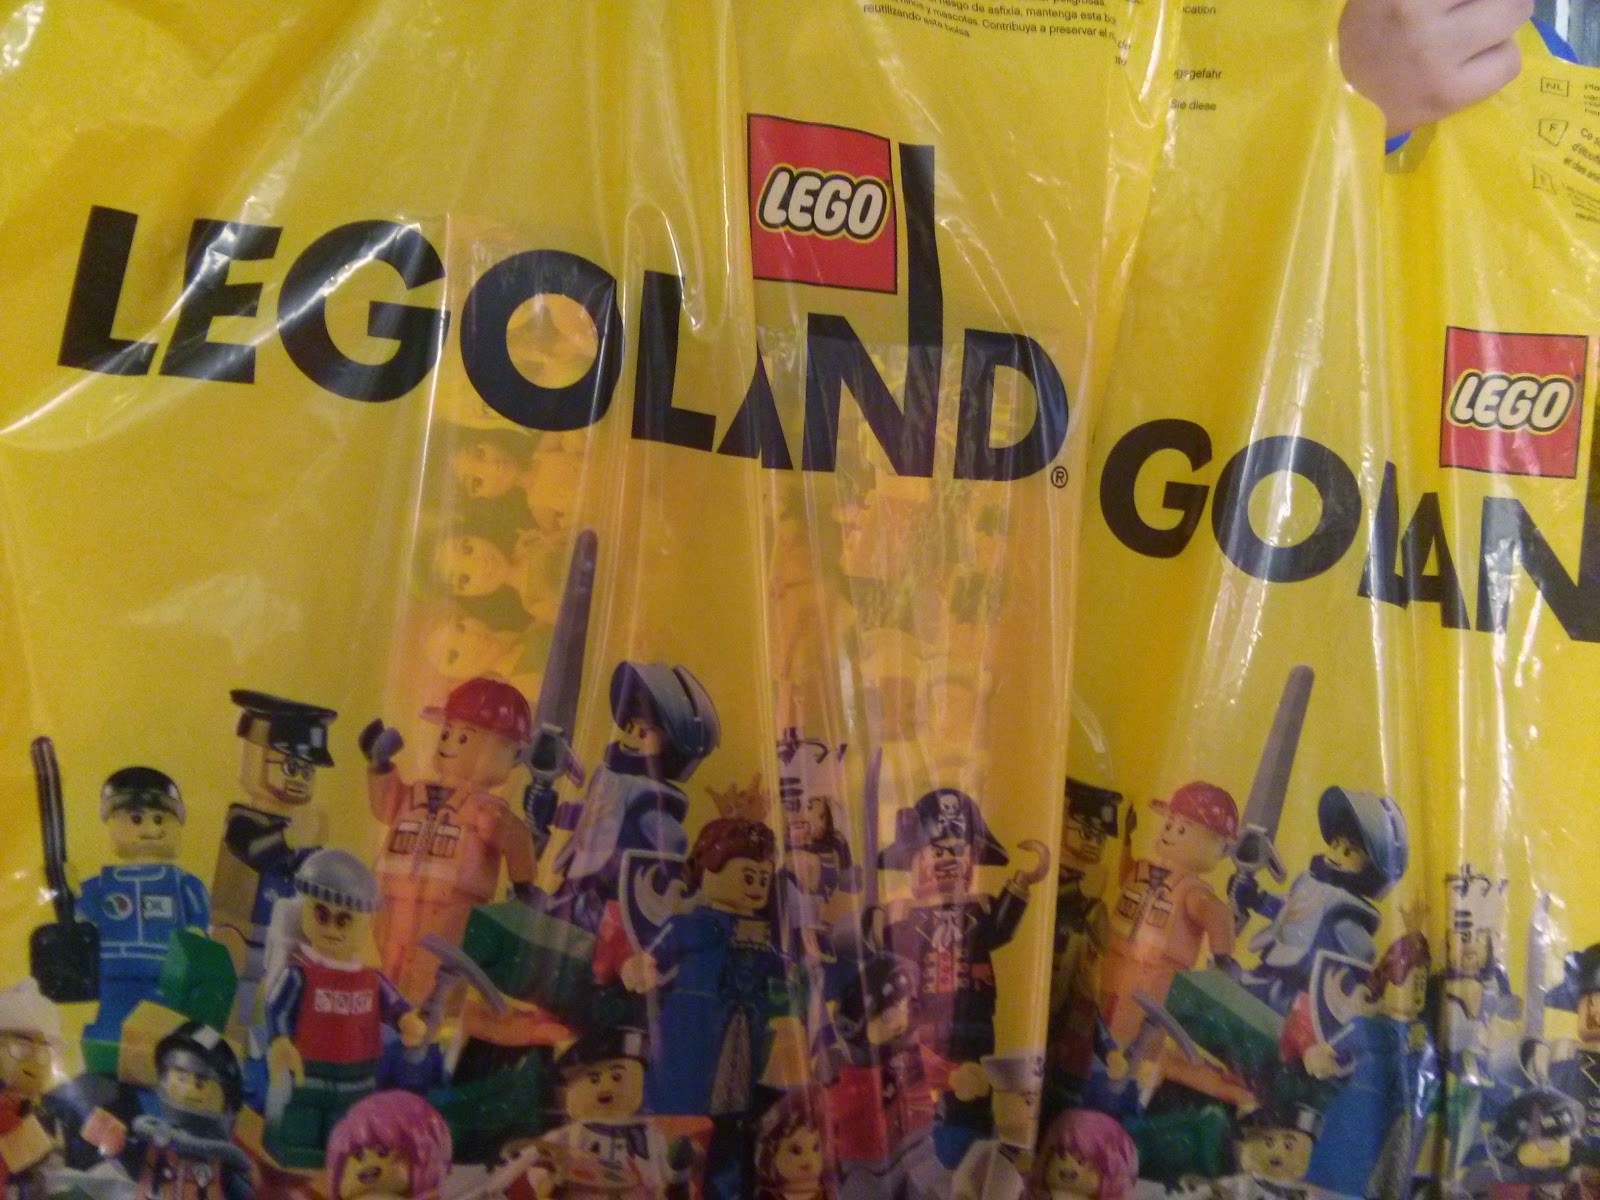 LEGOLAND goodies to play with at home